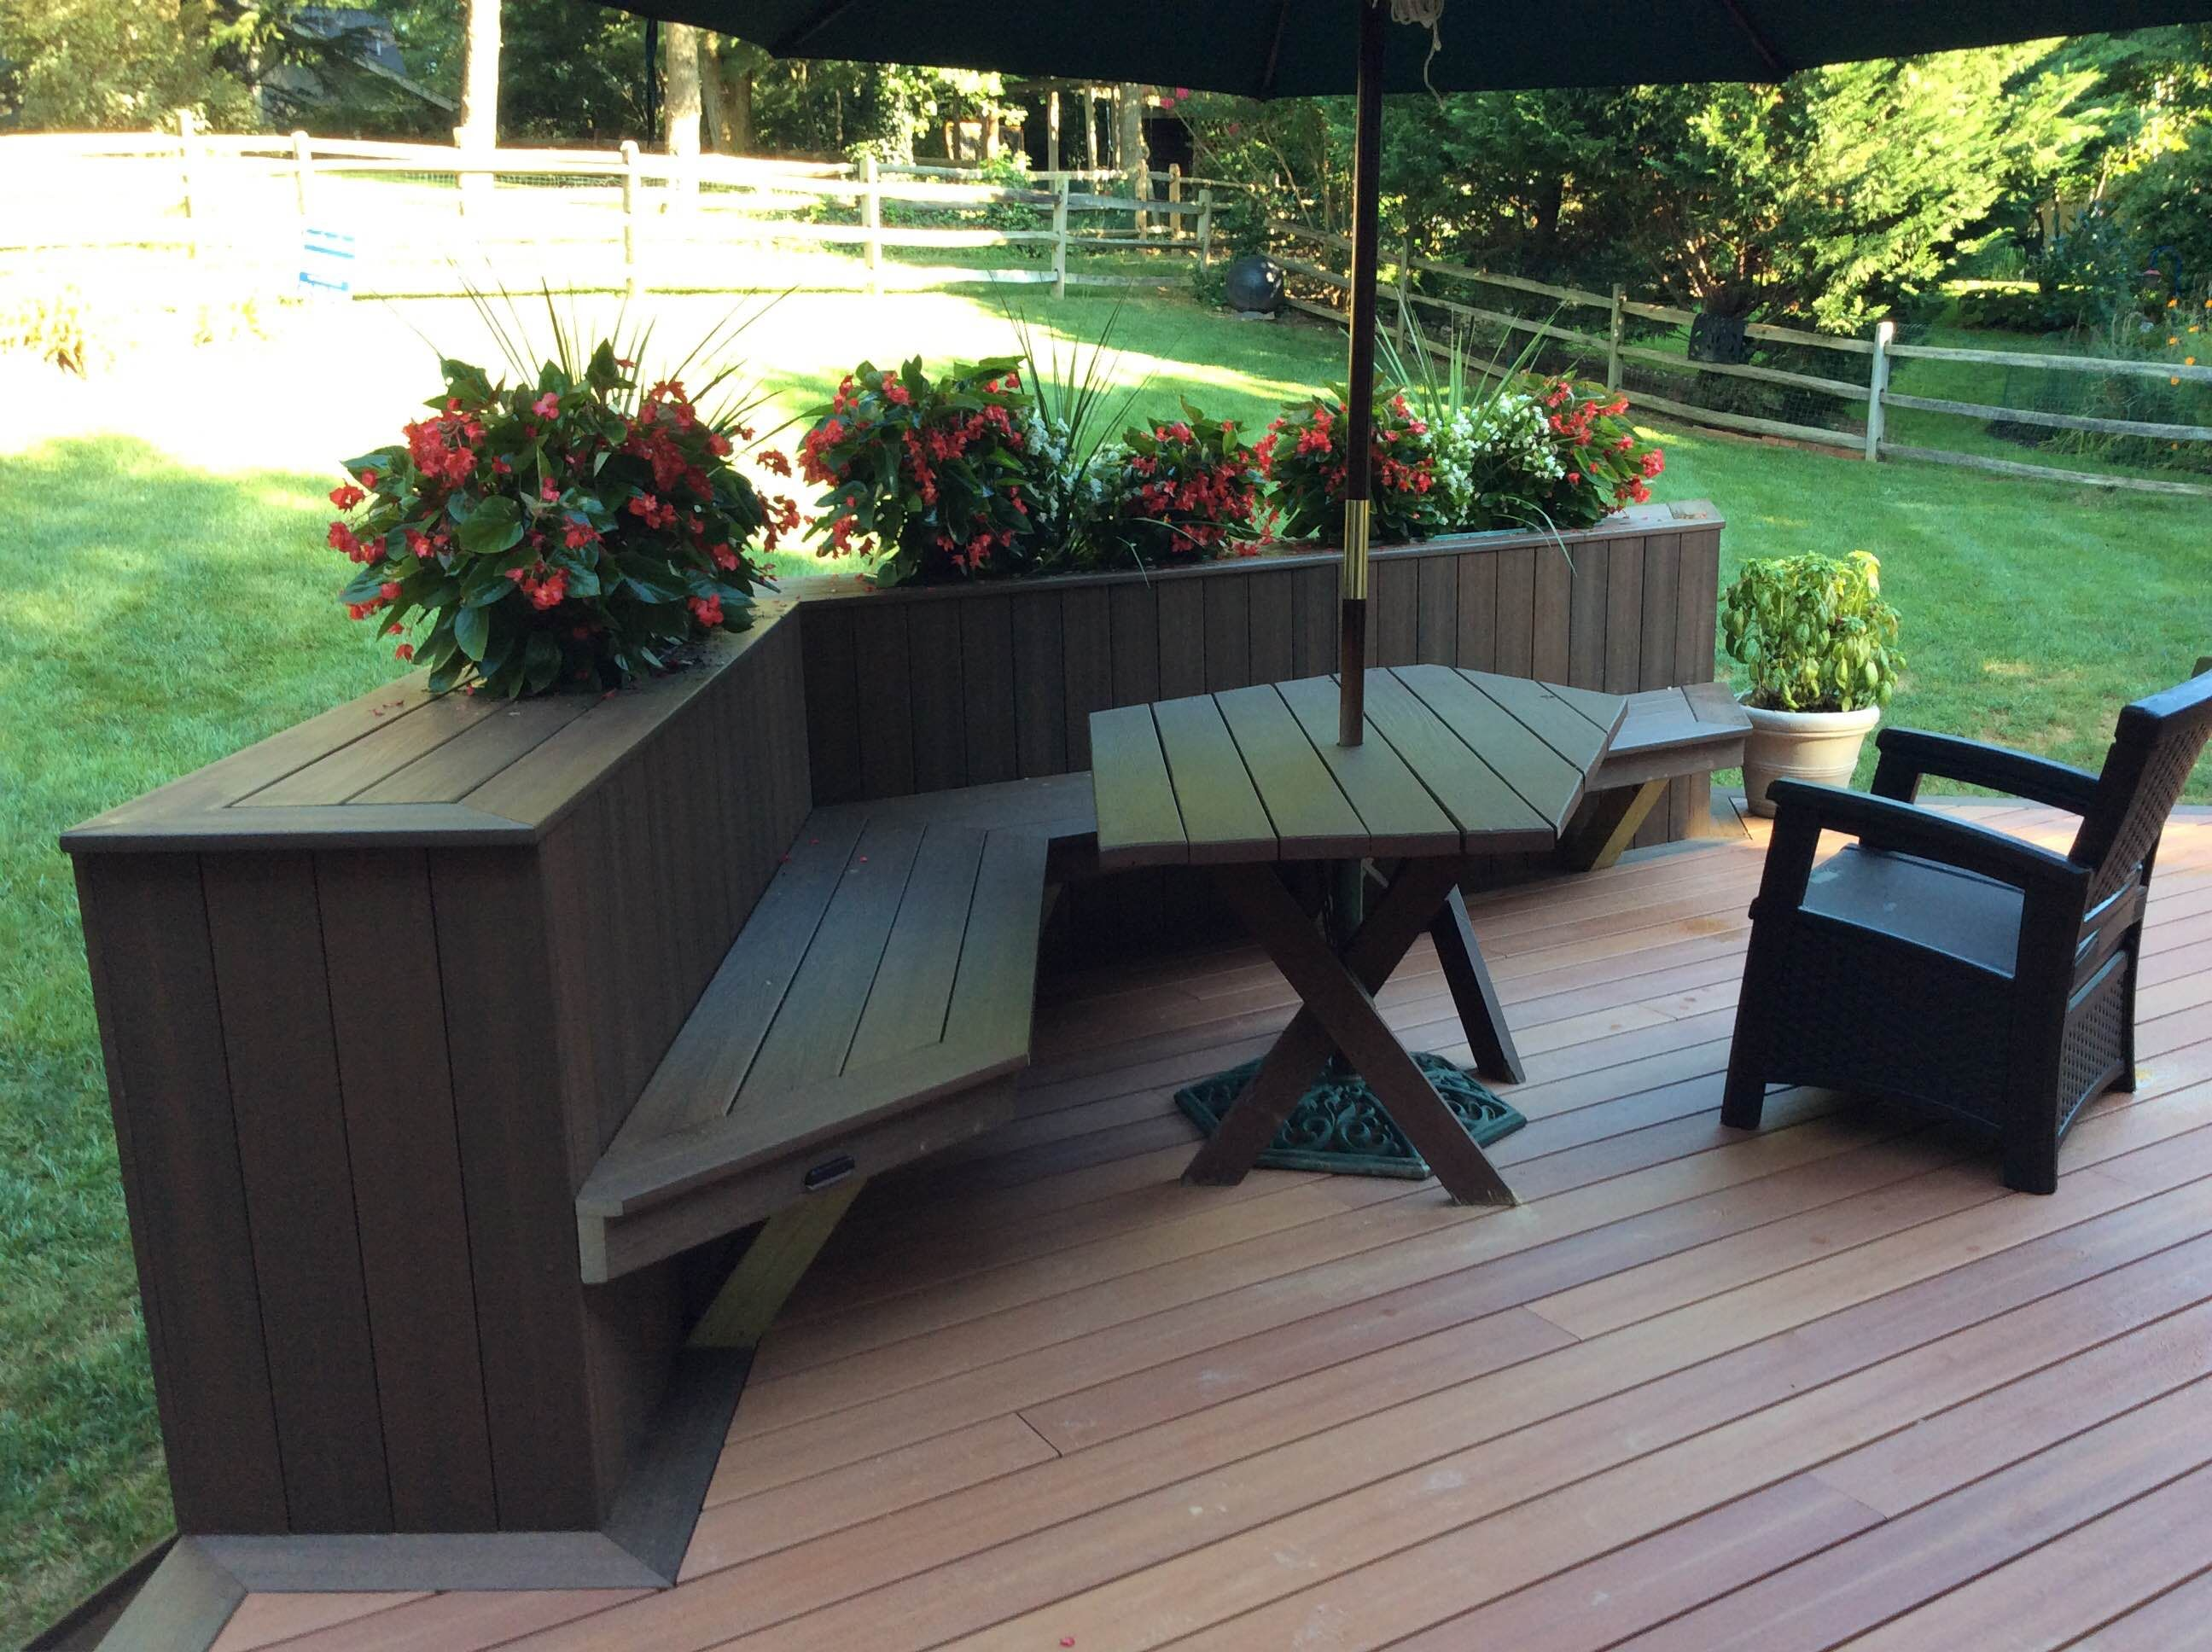 Plenty of space for outdoor dining fences decks patios for Garden decking planters